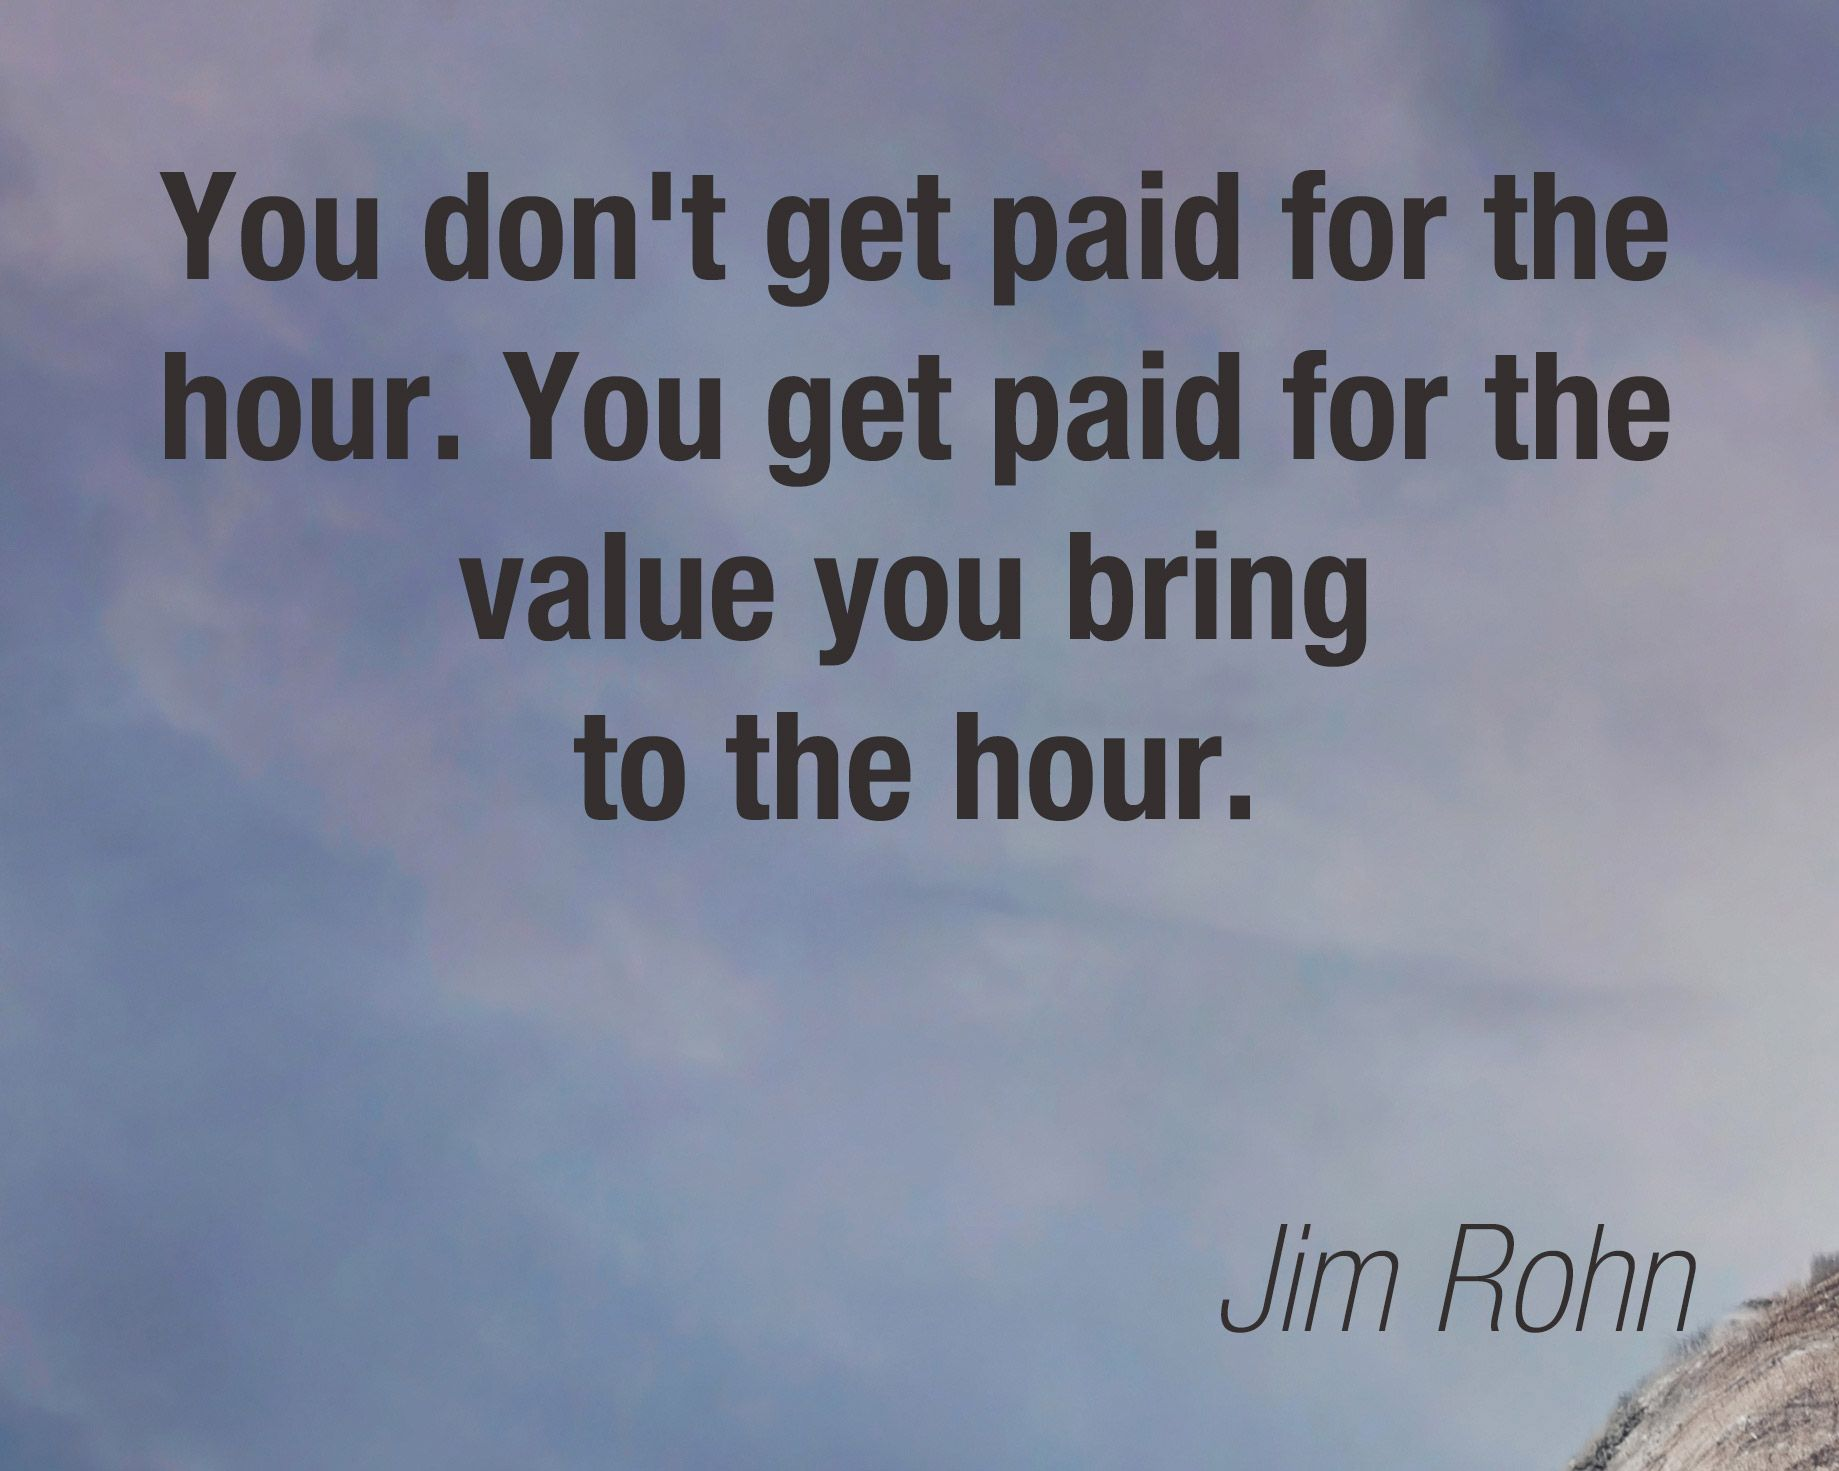 Quote Roller You Don't Get Paid For The Houryou Get Paid For The Value You